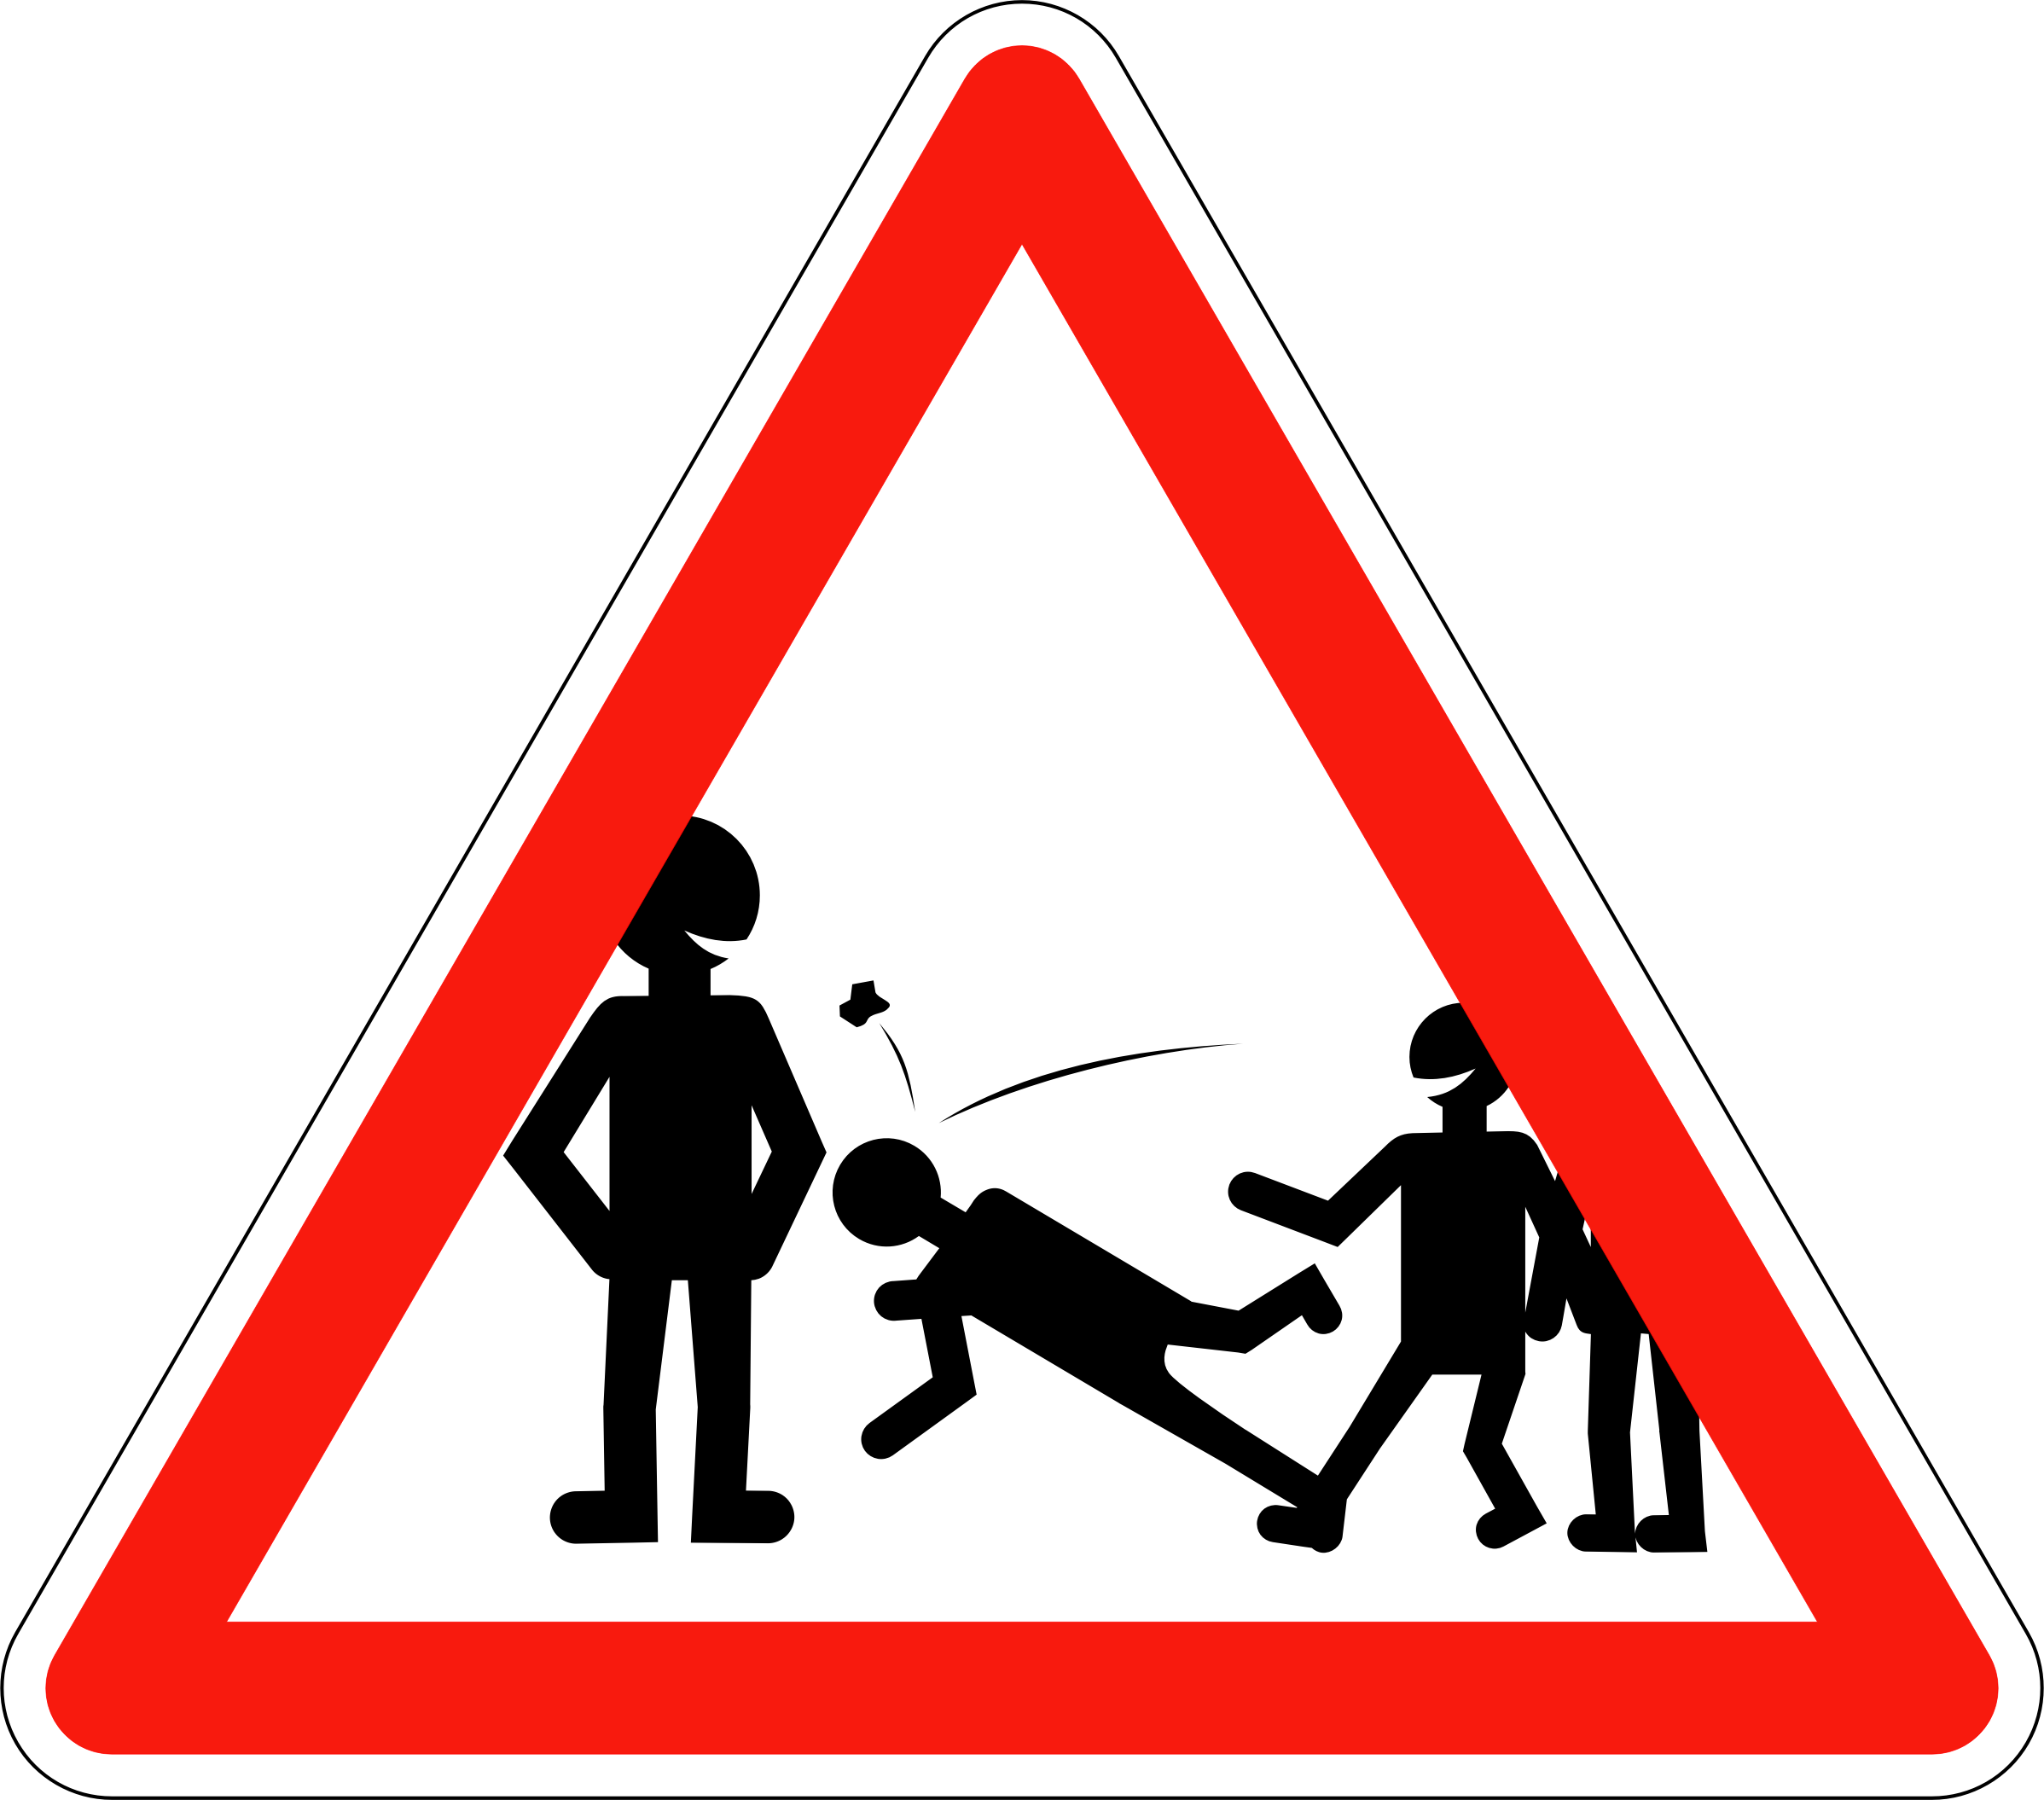 School sign clipart svg library Clipart - School violence svg library